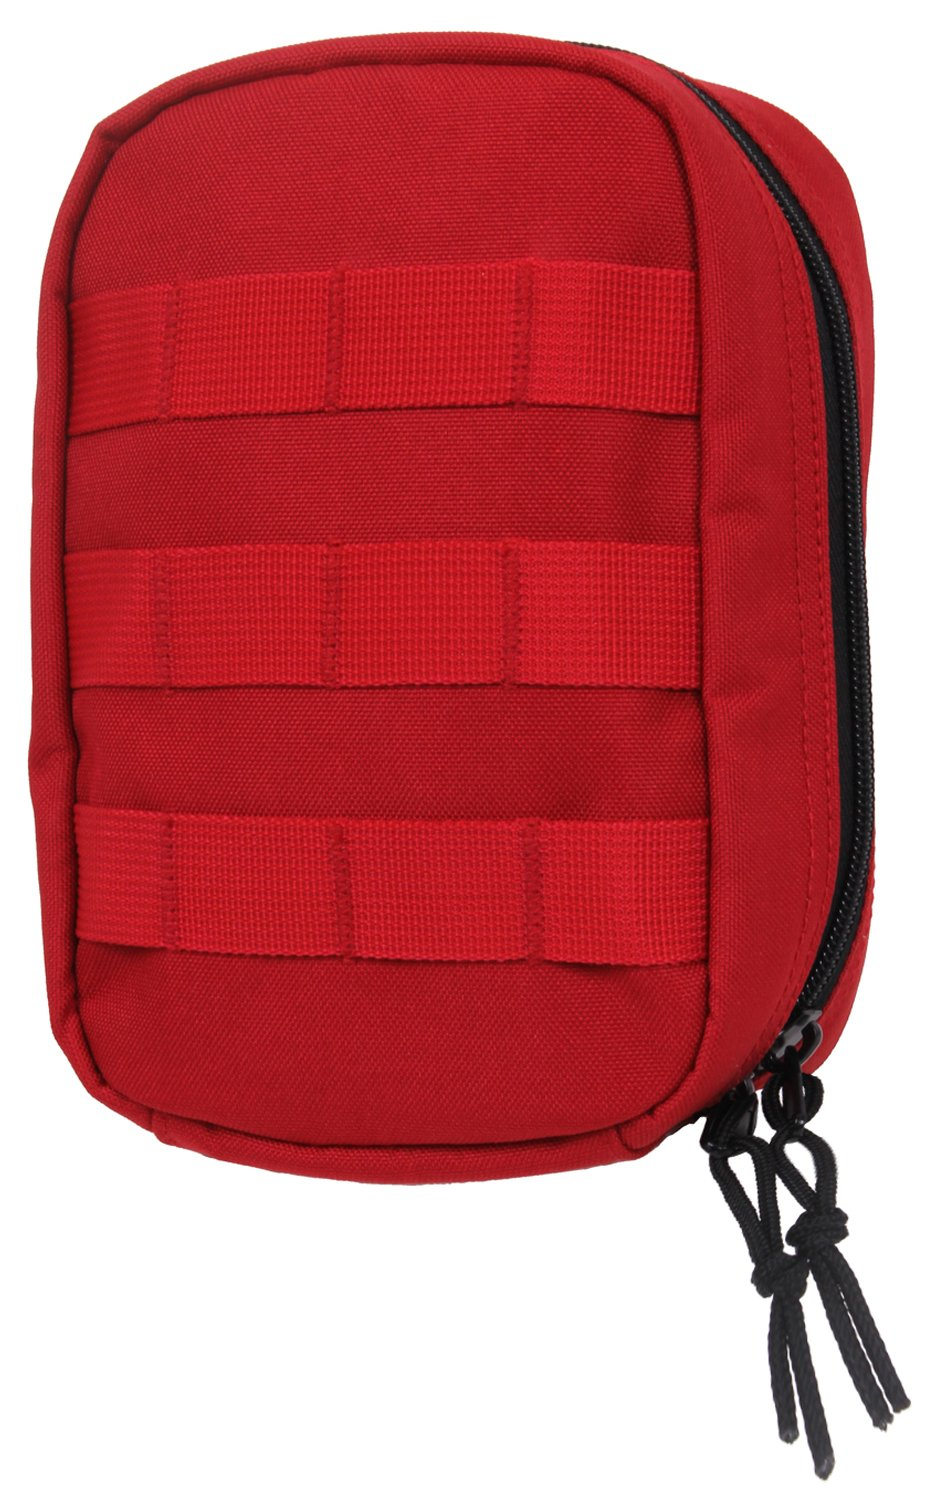 Rothco MOLLE Tactical Trauma Kit, Red by Rothco (Image #1)